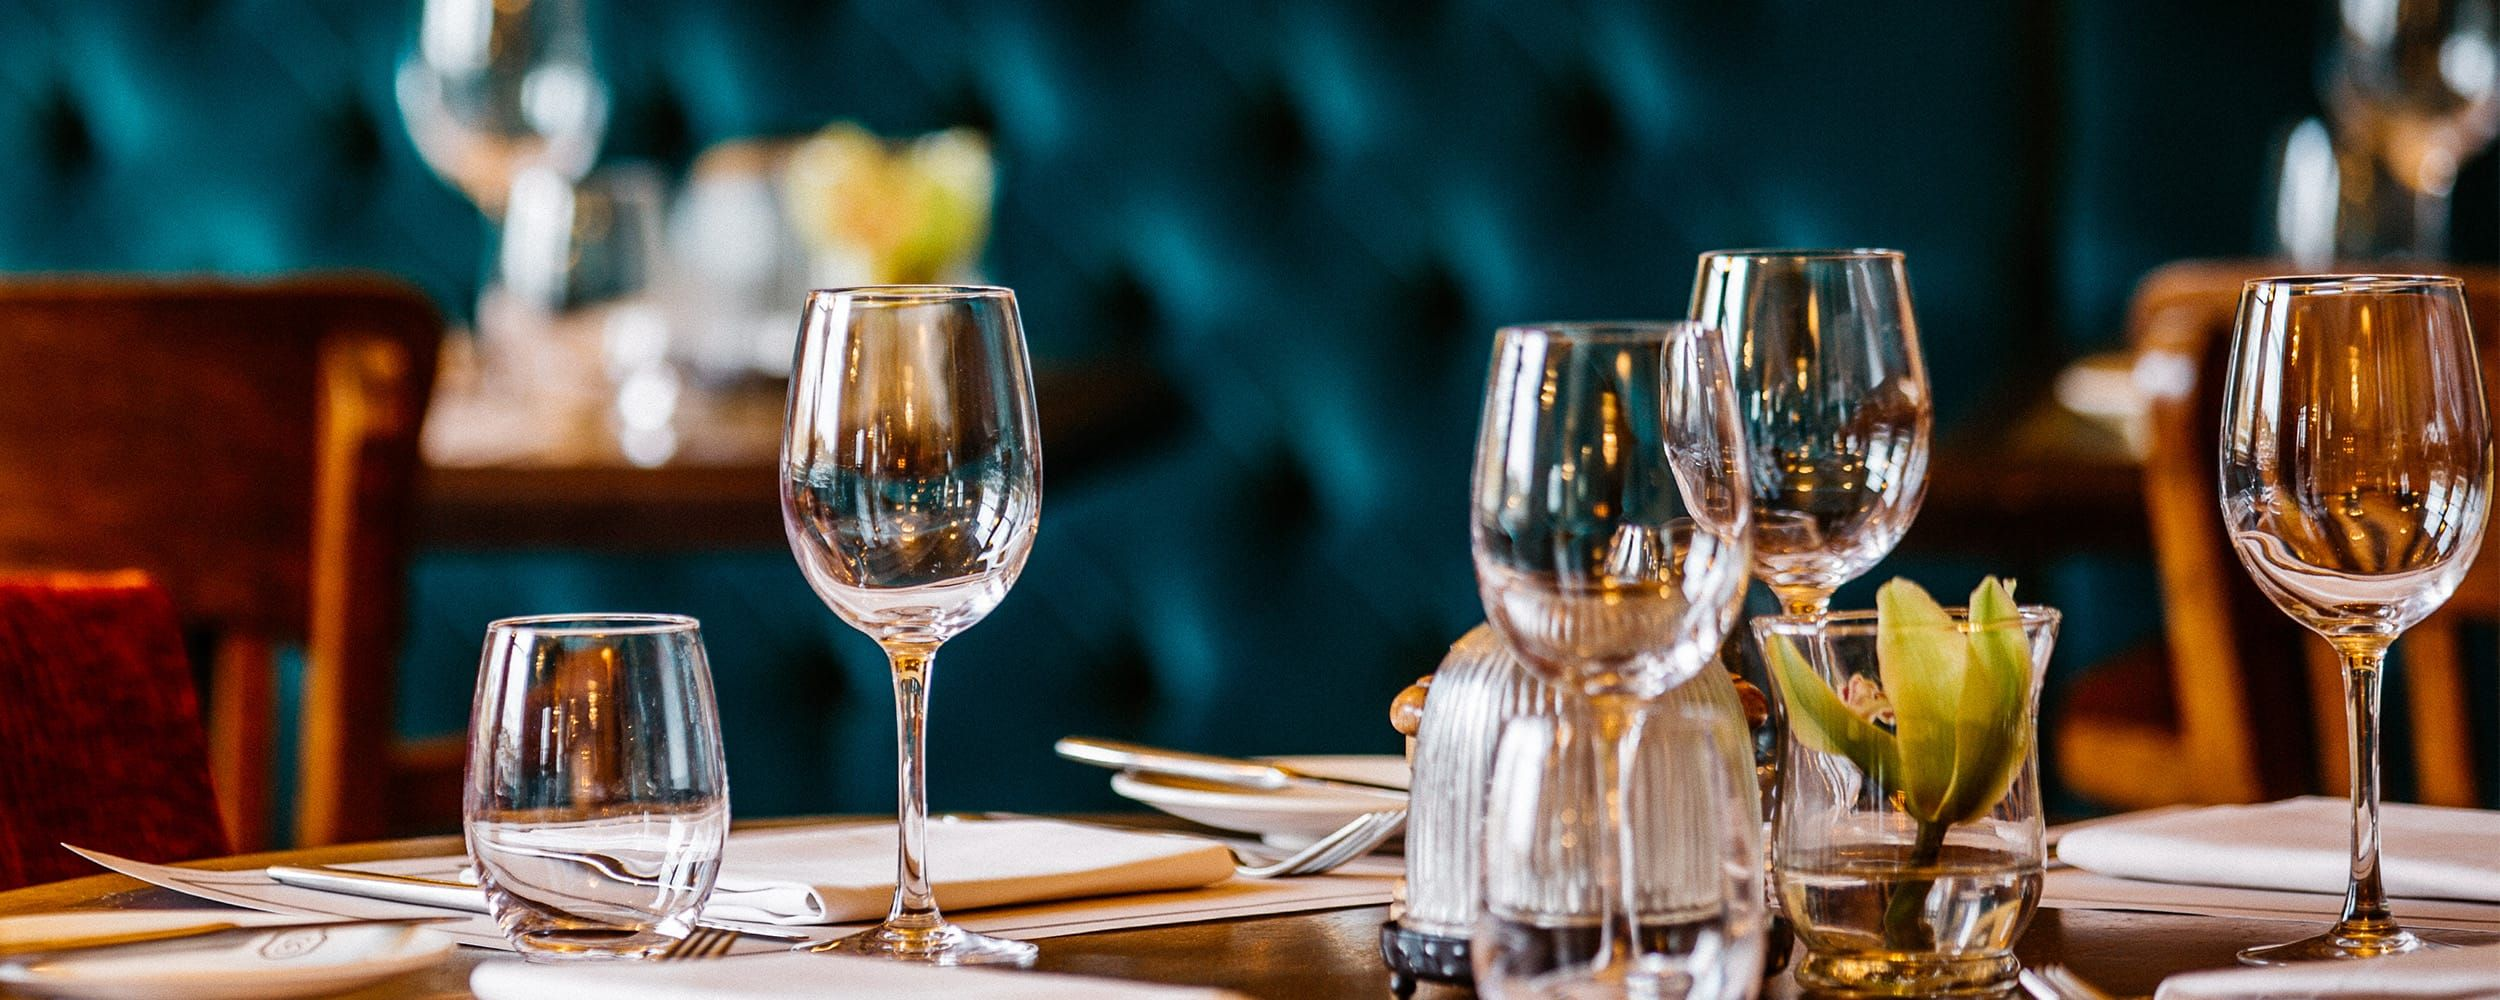 Meeting & private dining Meeting & private dining